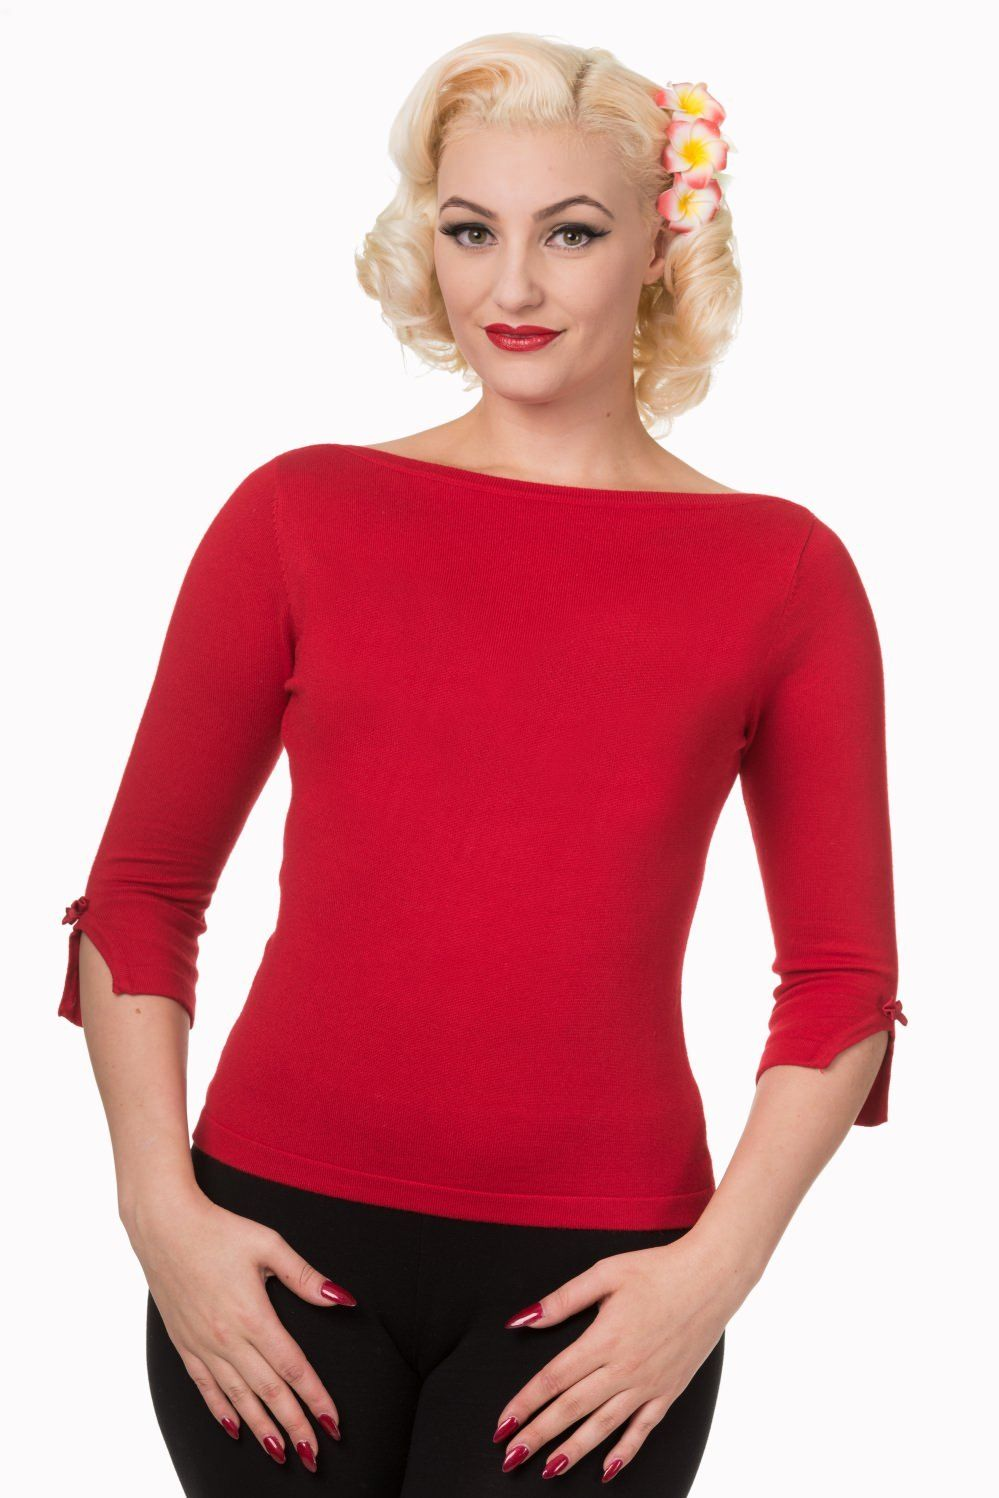 Red Vintage 50/'s Rockabilly Blouse Retro Addicted Sweater Top Banned Apparel